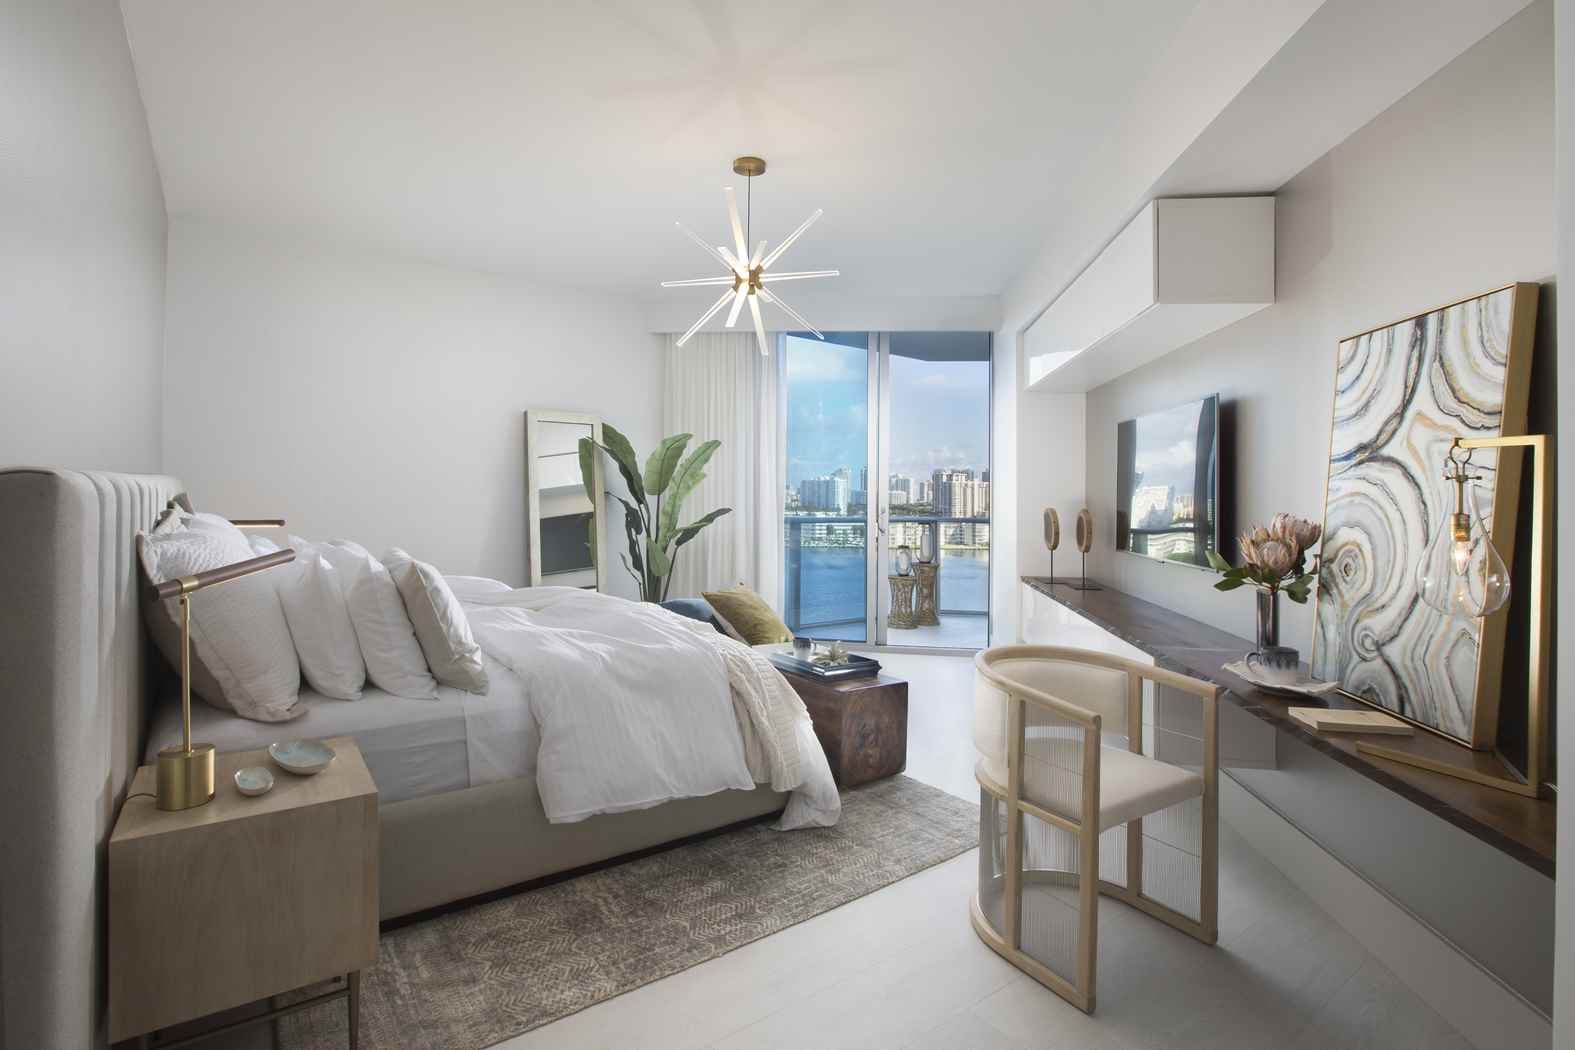 Blog review modern coastal miami condo